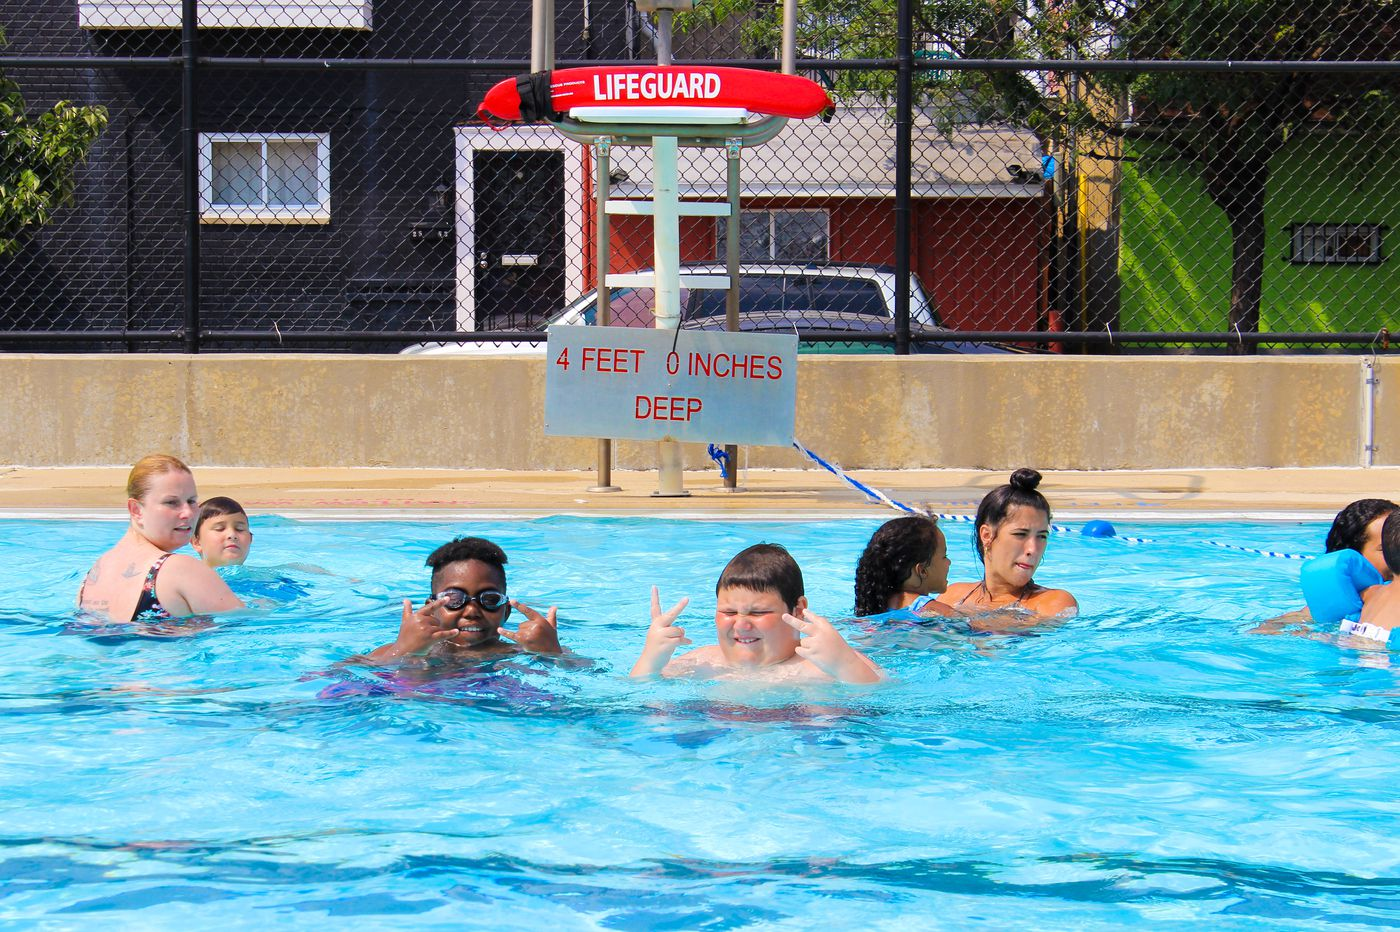 Affordable summer camp a lifesaver for working parents | Opinion